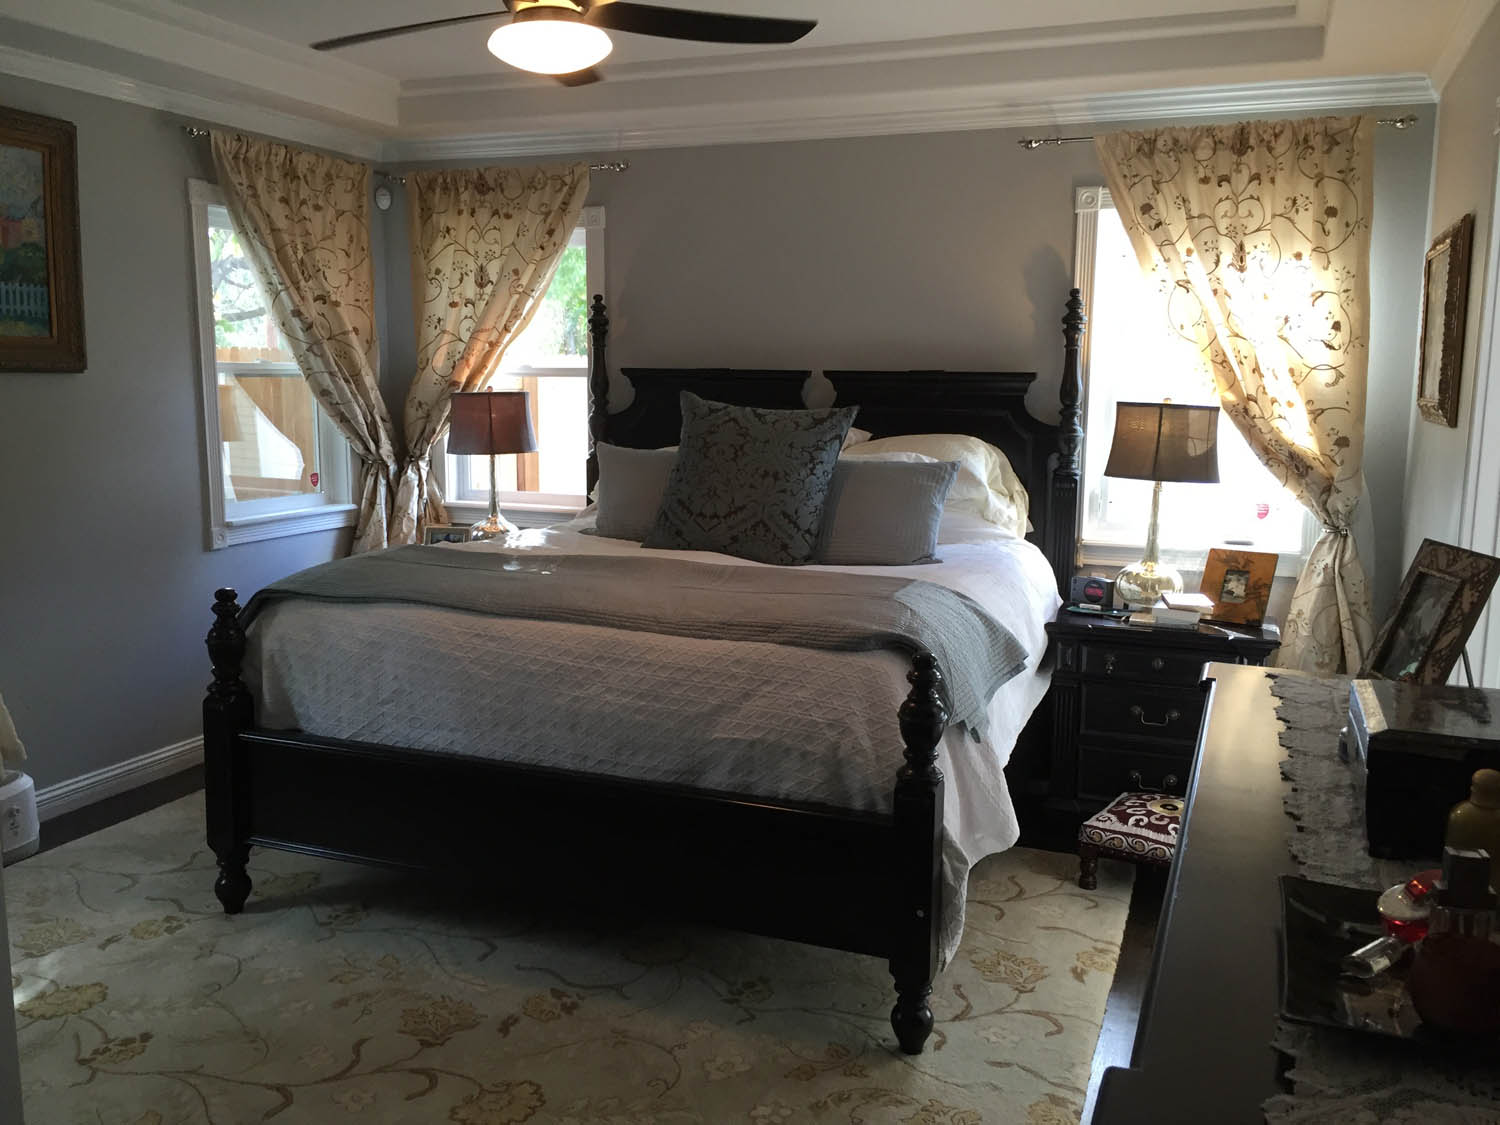 Master bedroom remodeled with new fan, floors, draperies and paint.